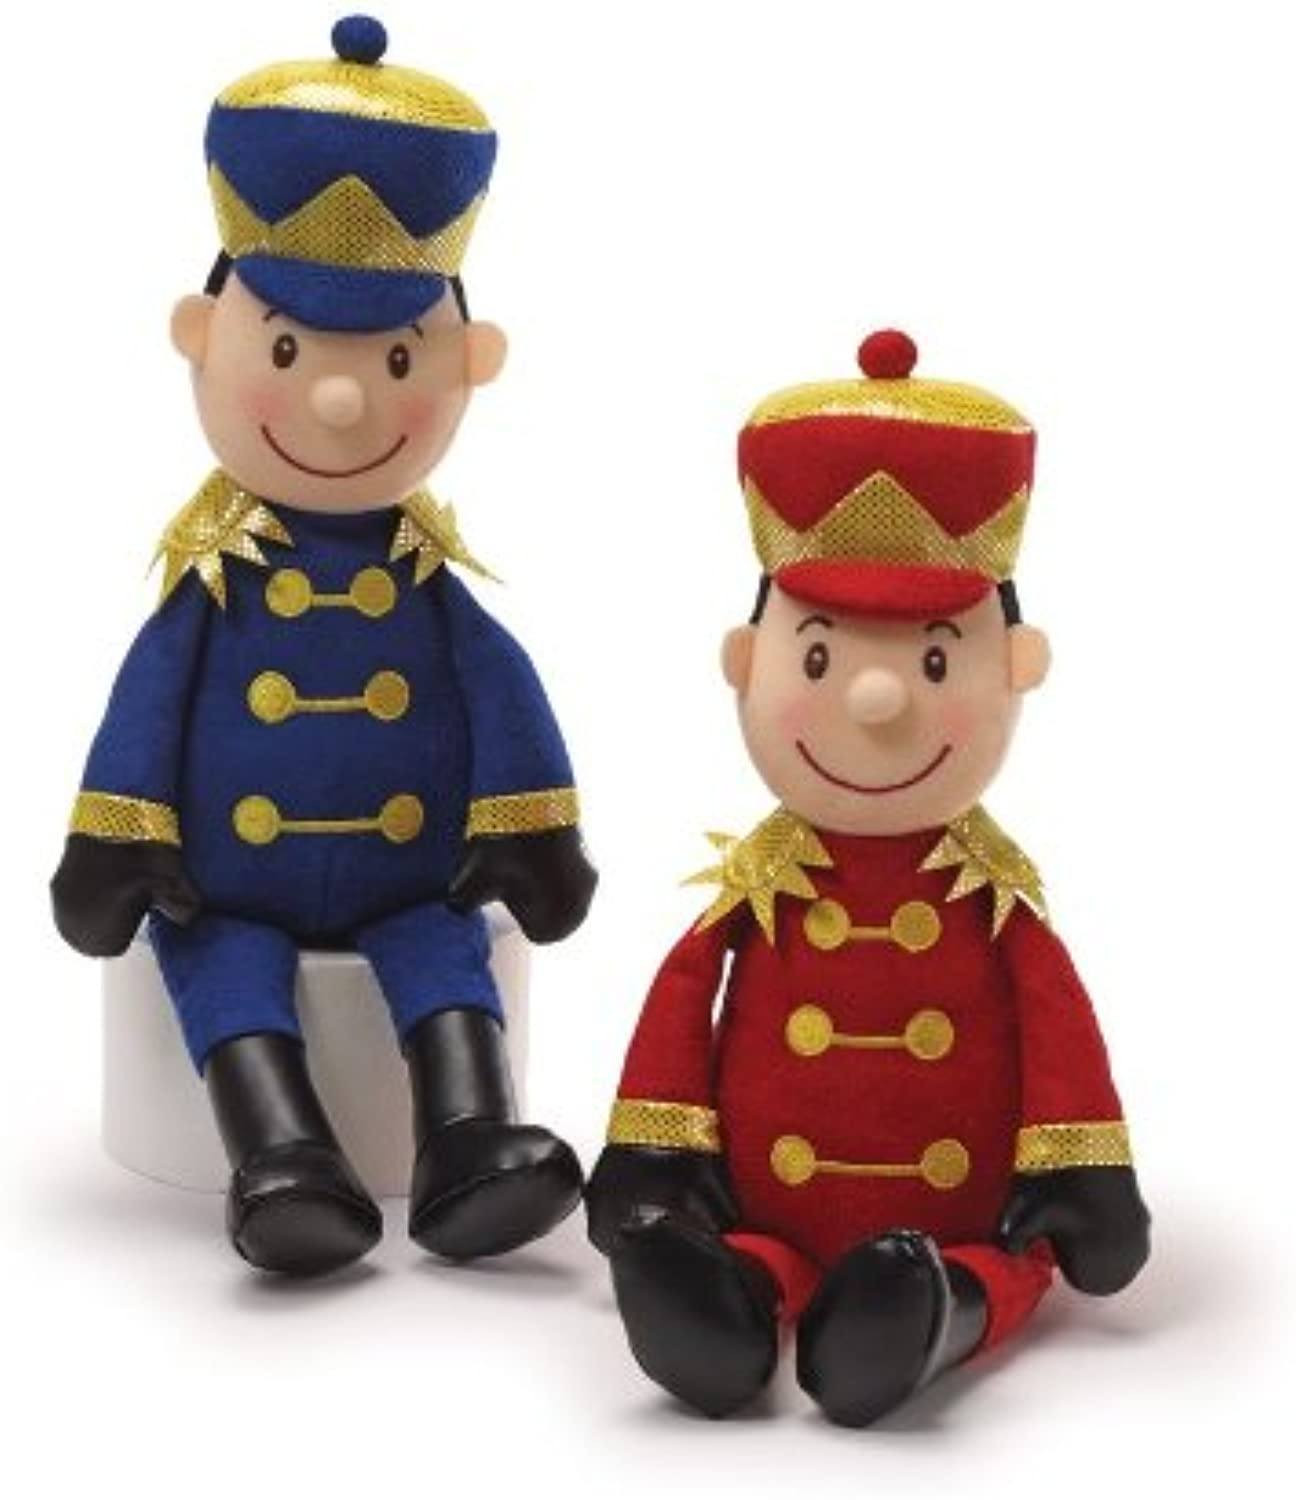 Toy Soldier Plush 13 Inch Farbes Vary Christmas Stuffed Animal by GUND 4035952 by GUND